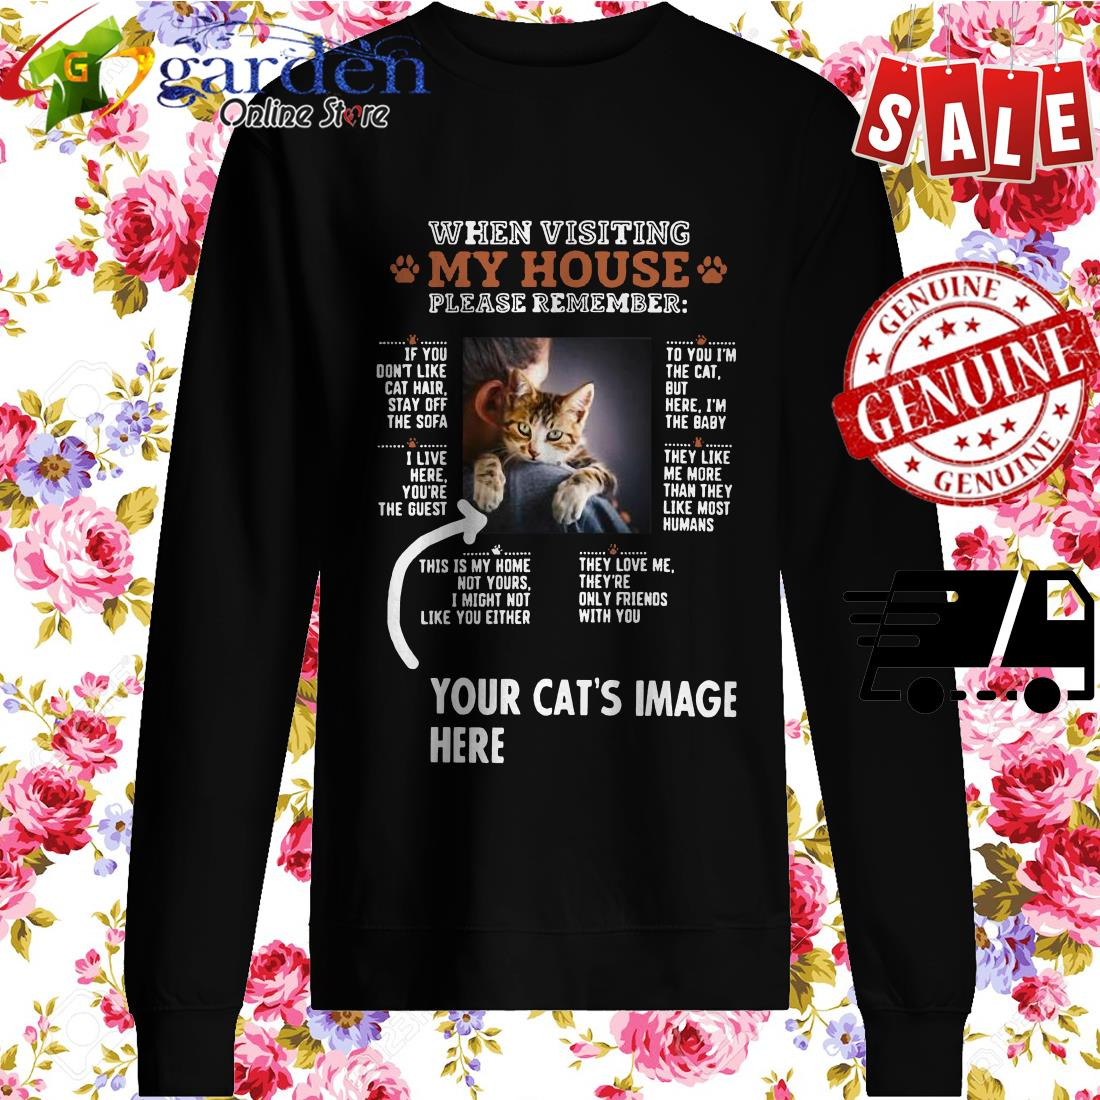 When Visiting My House Please Remember Your Cat's Image Here sweater